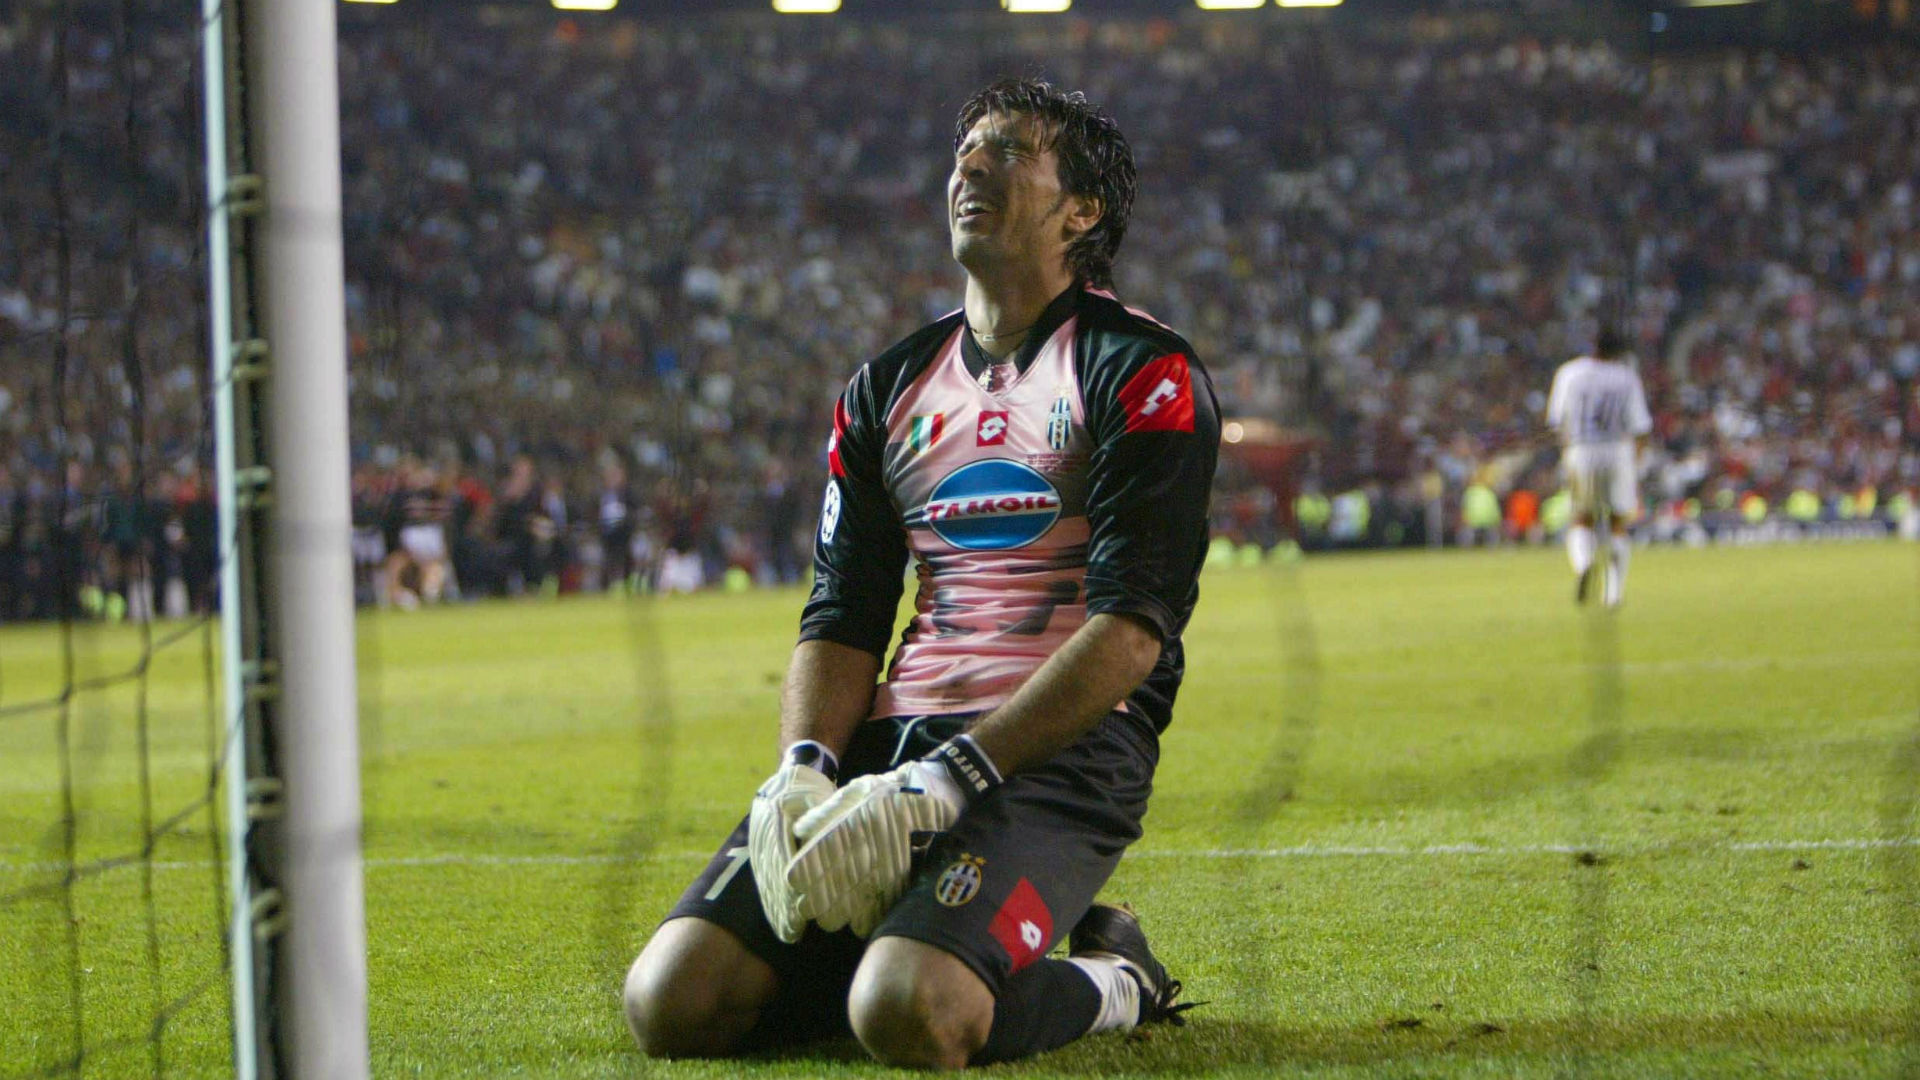 Buffon Juventus Milan Champions League 2003